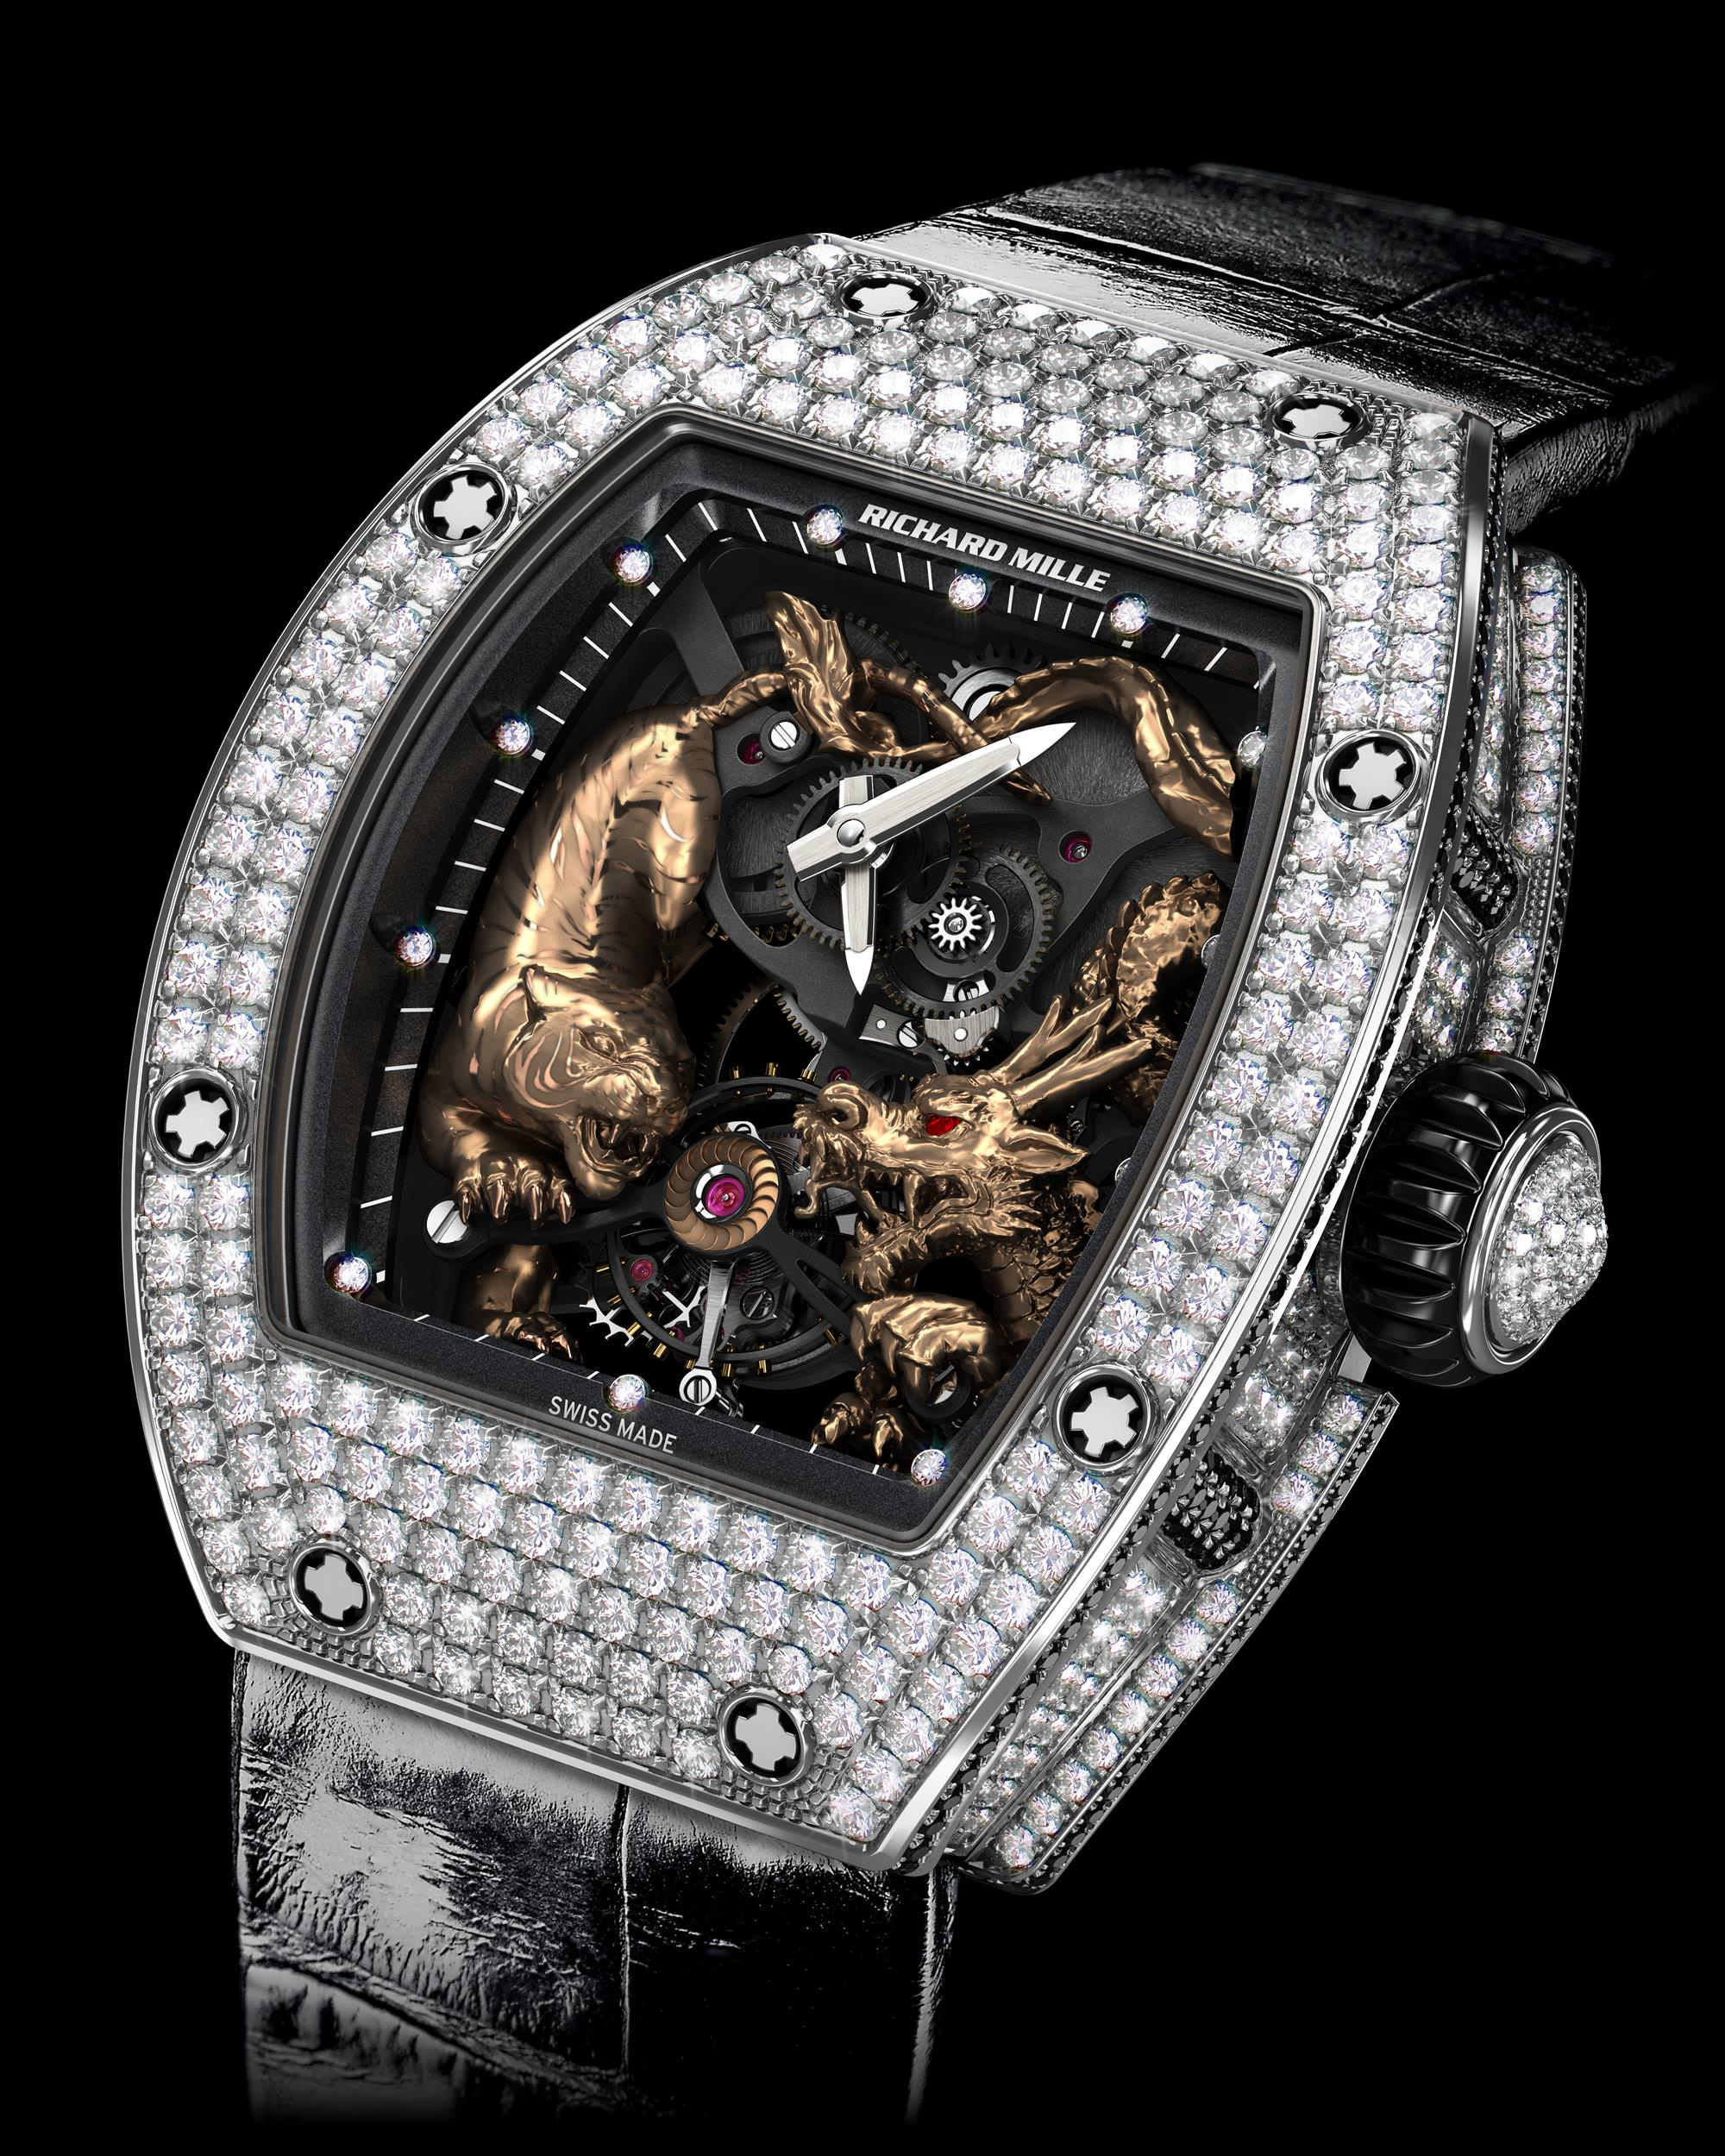 richard_mille_rm_51_01_tiger_and_dragon_michelle_xeoh